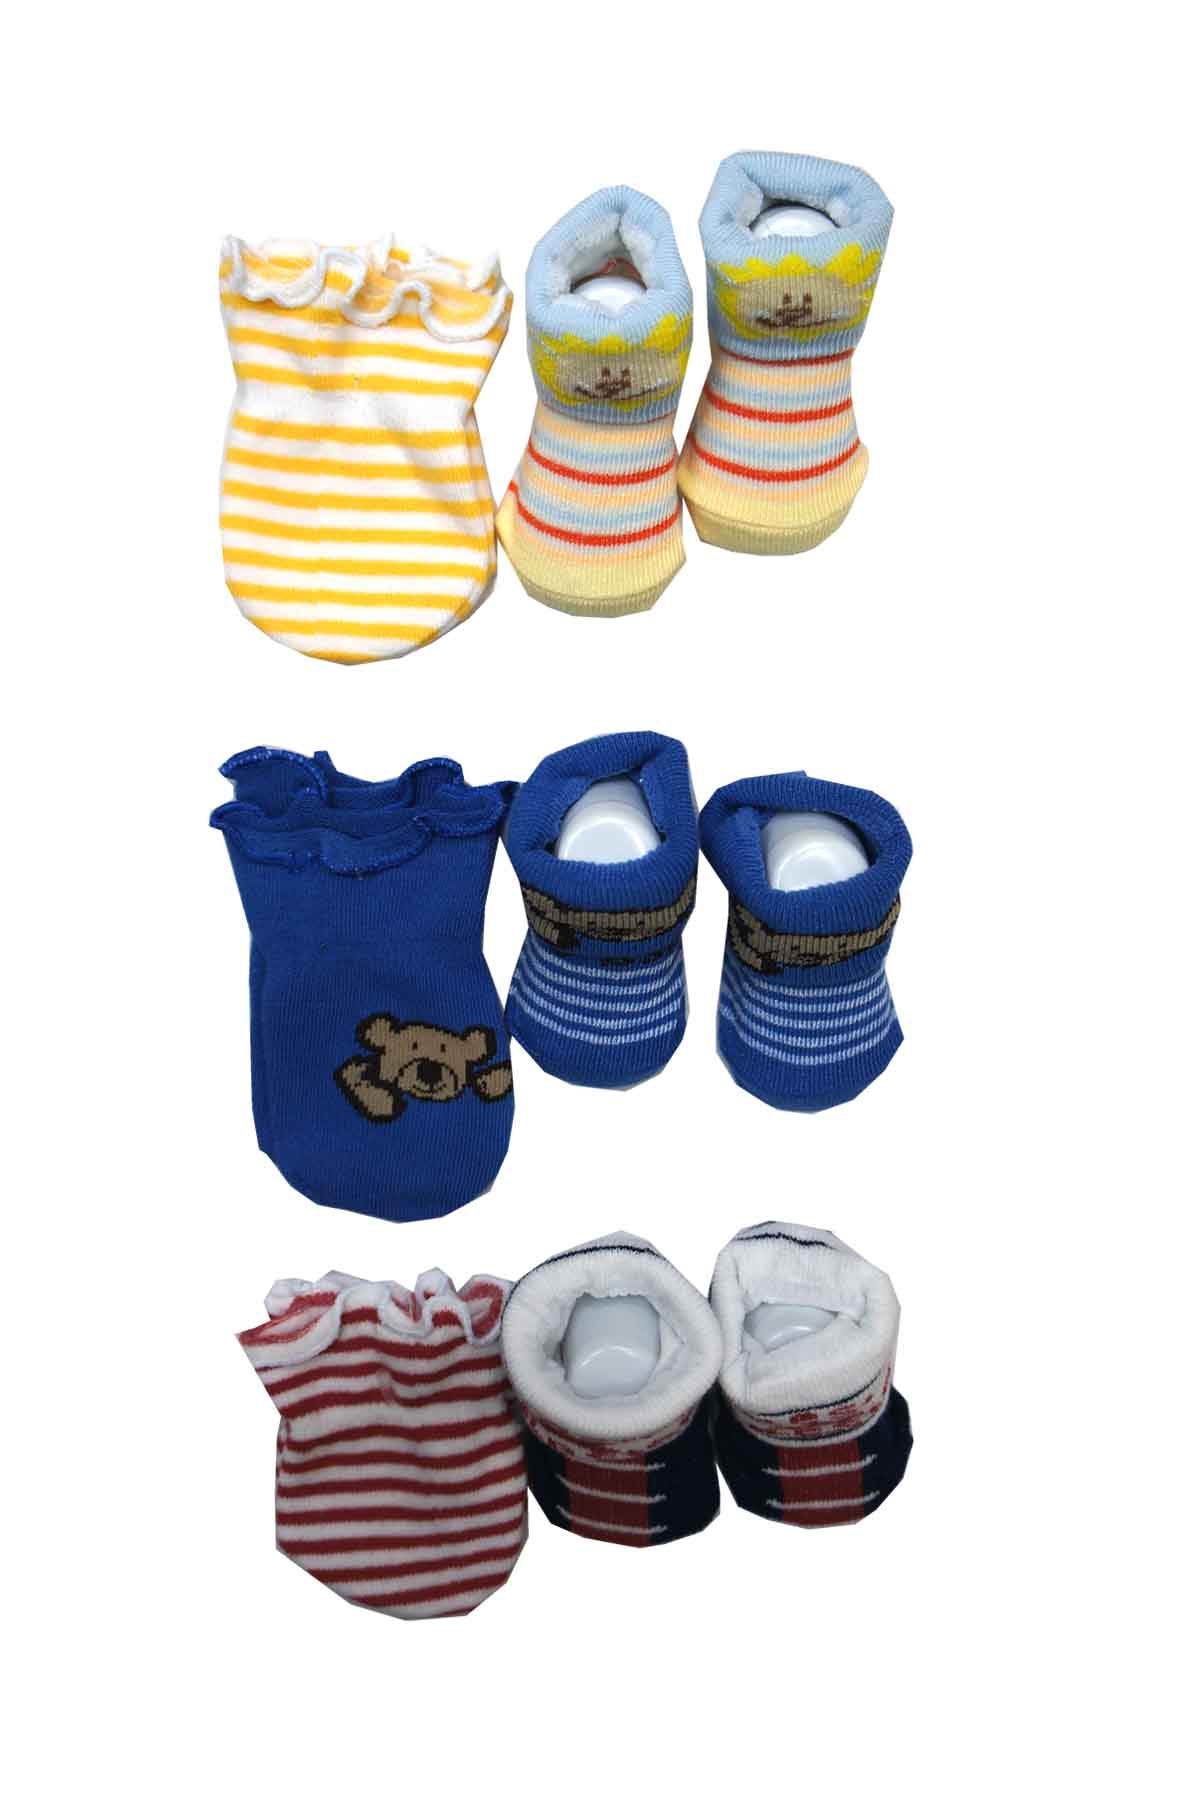 Cart s Newborn Baby Boy Mittens So end 4 17 2020 12 01 PM